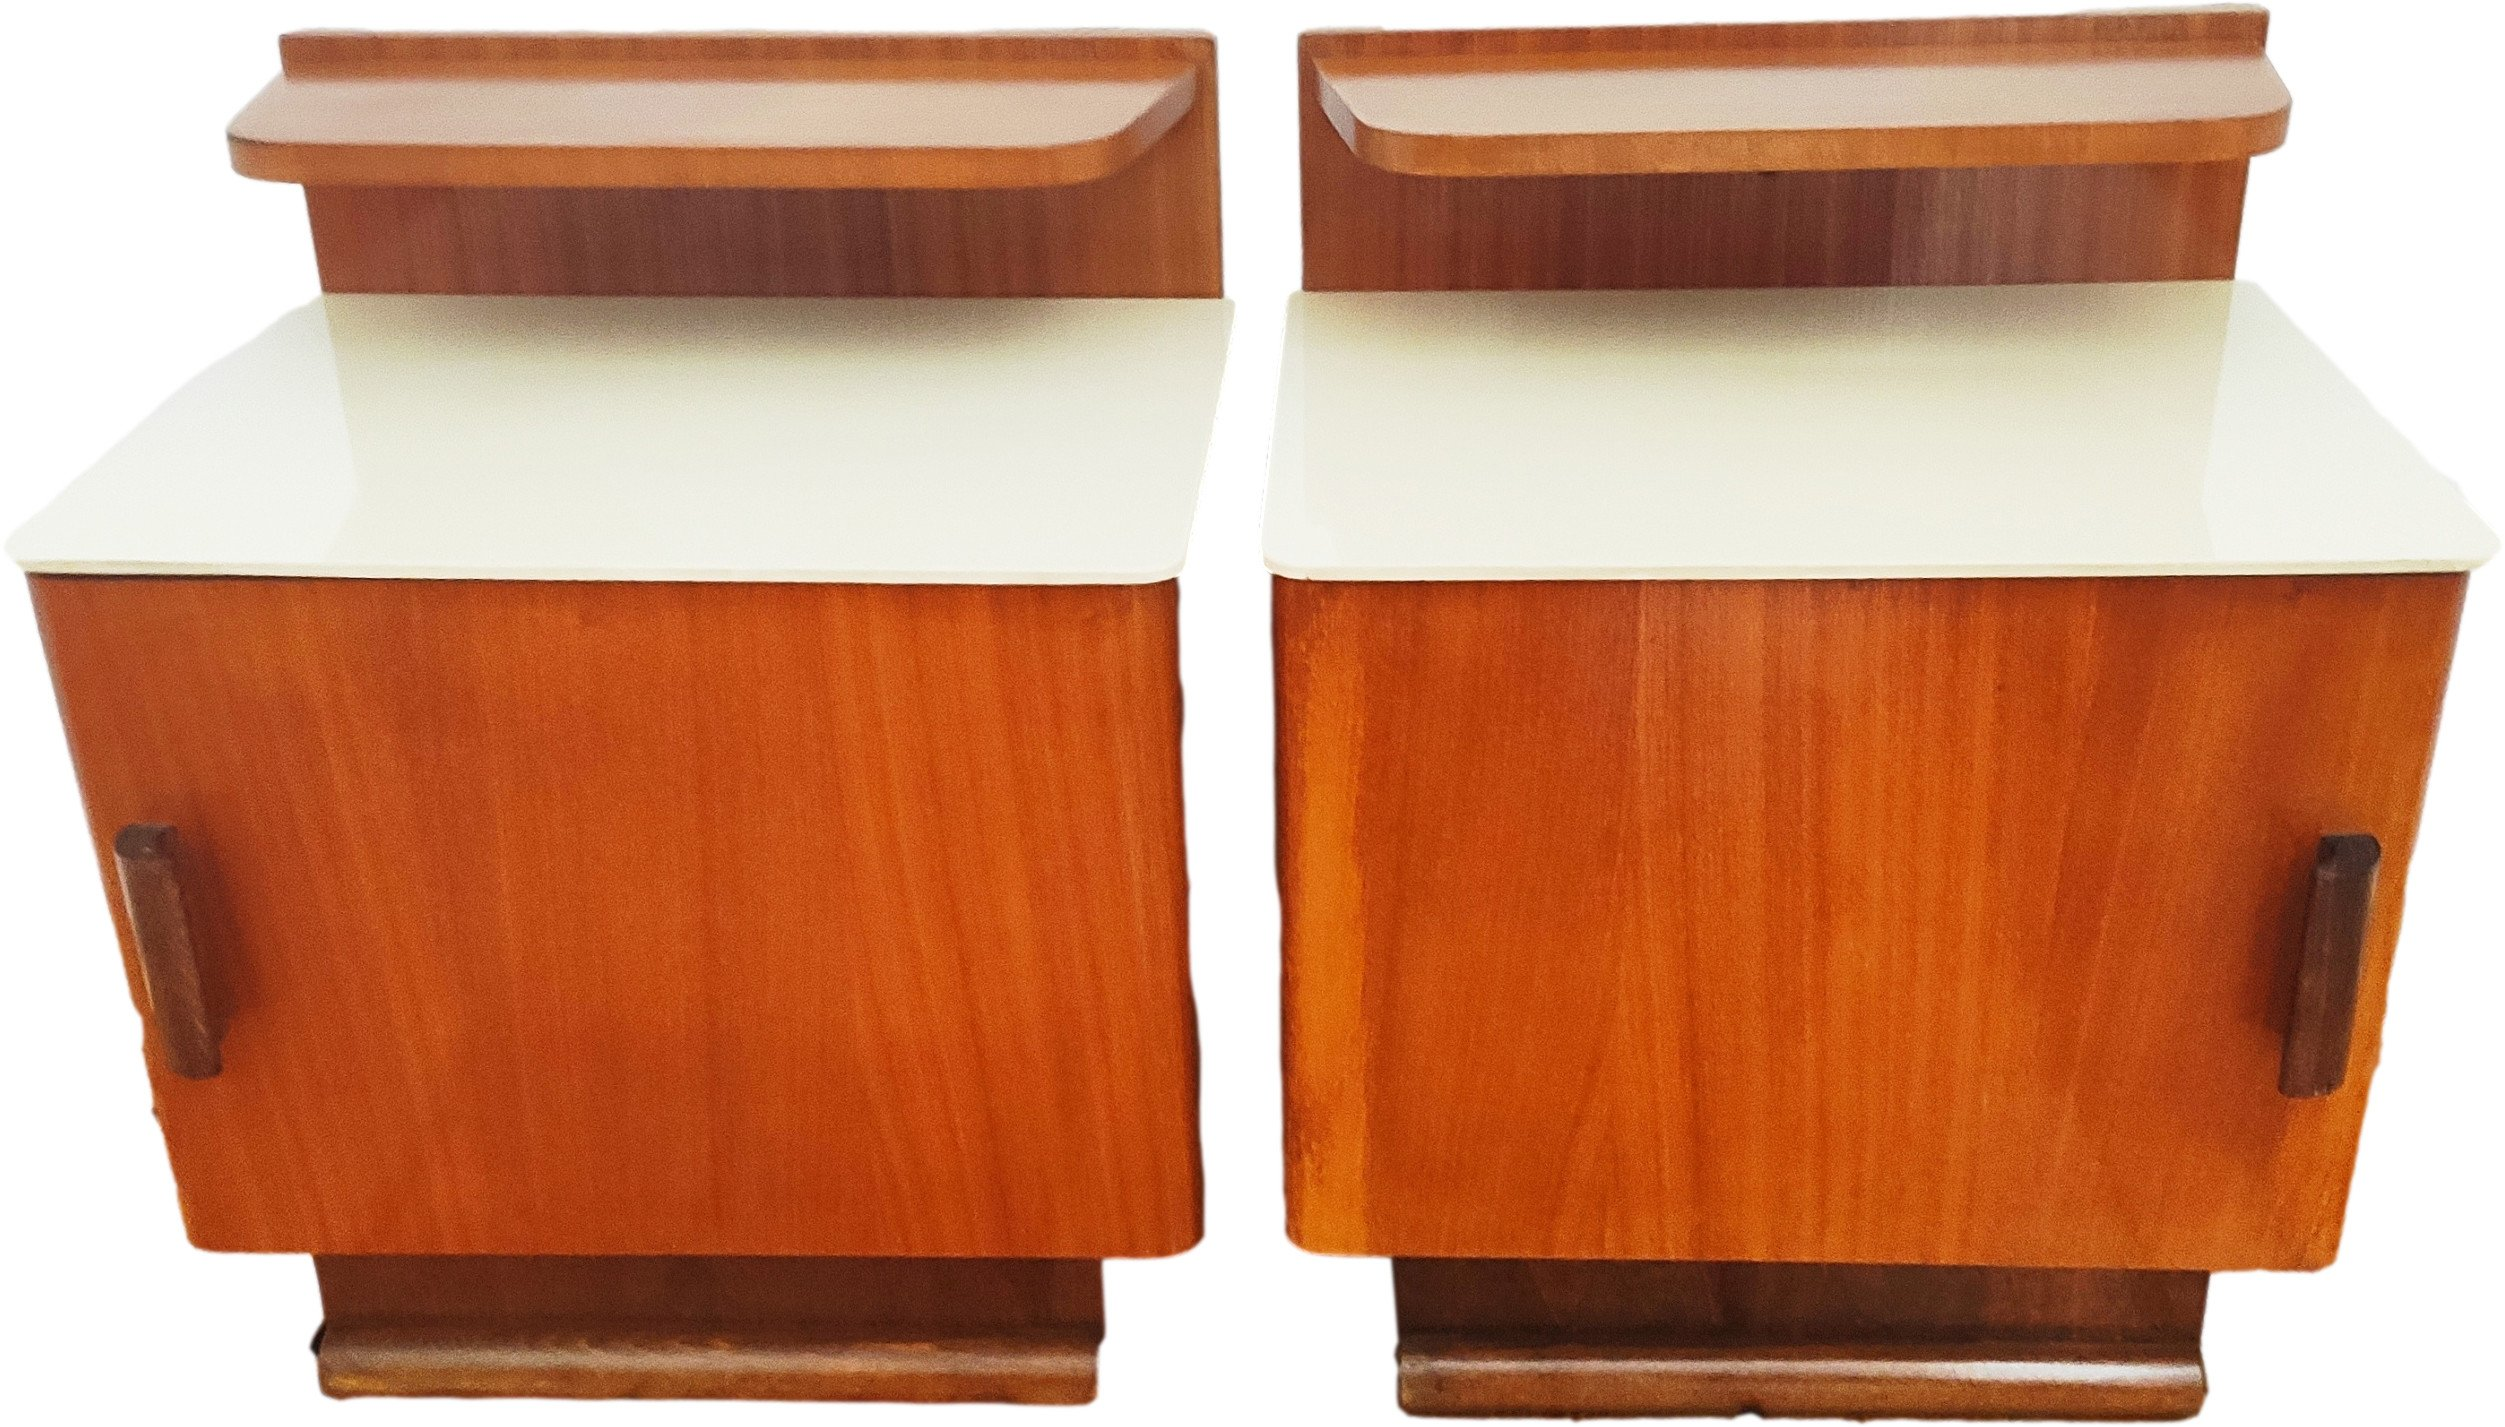 Pair of Nightstands by J. Halabala for UP Závody, Czechoslovakia, 1950s